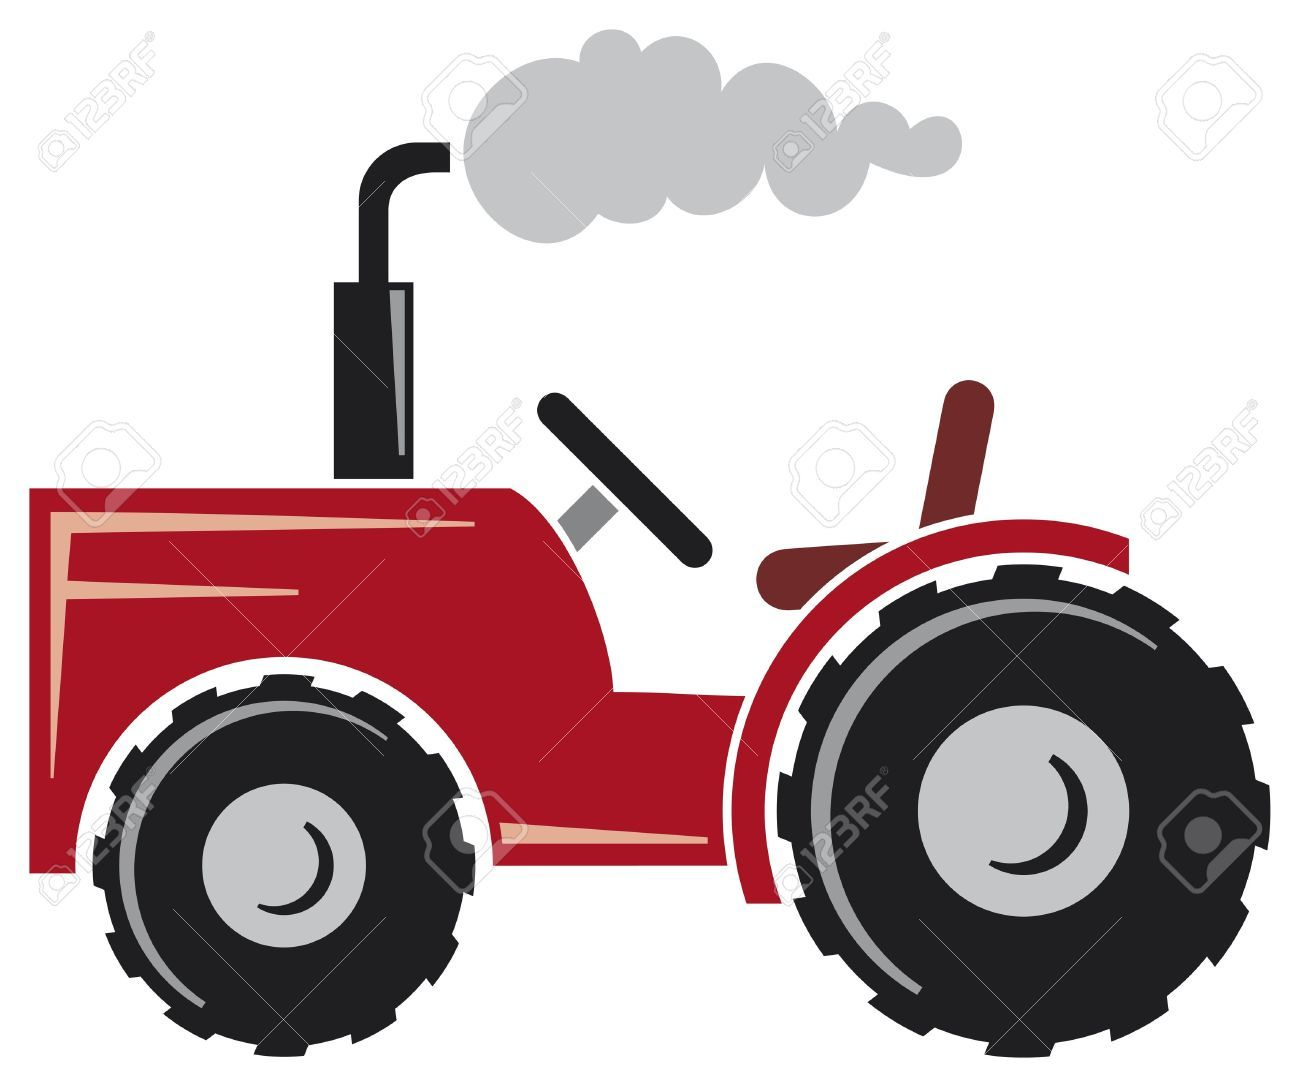 Tractor Cartoon Stock Vector Illustration And Royalty Free.